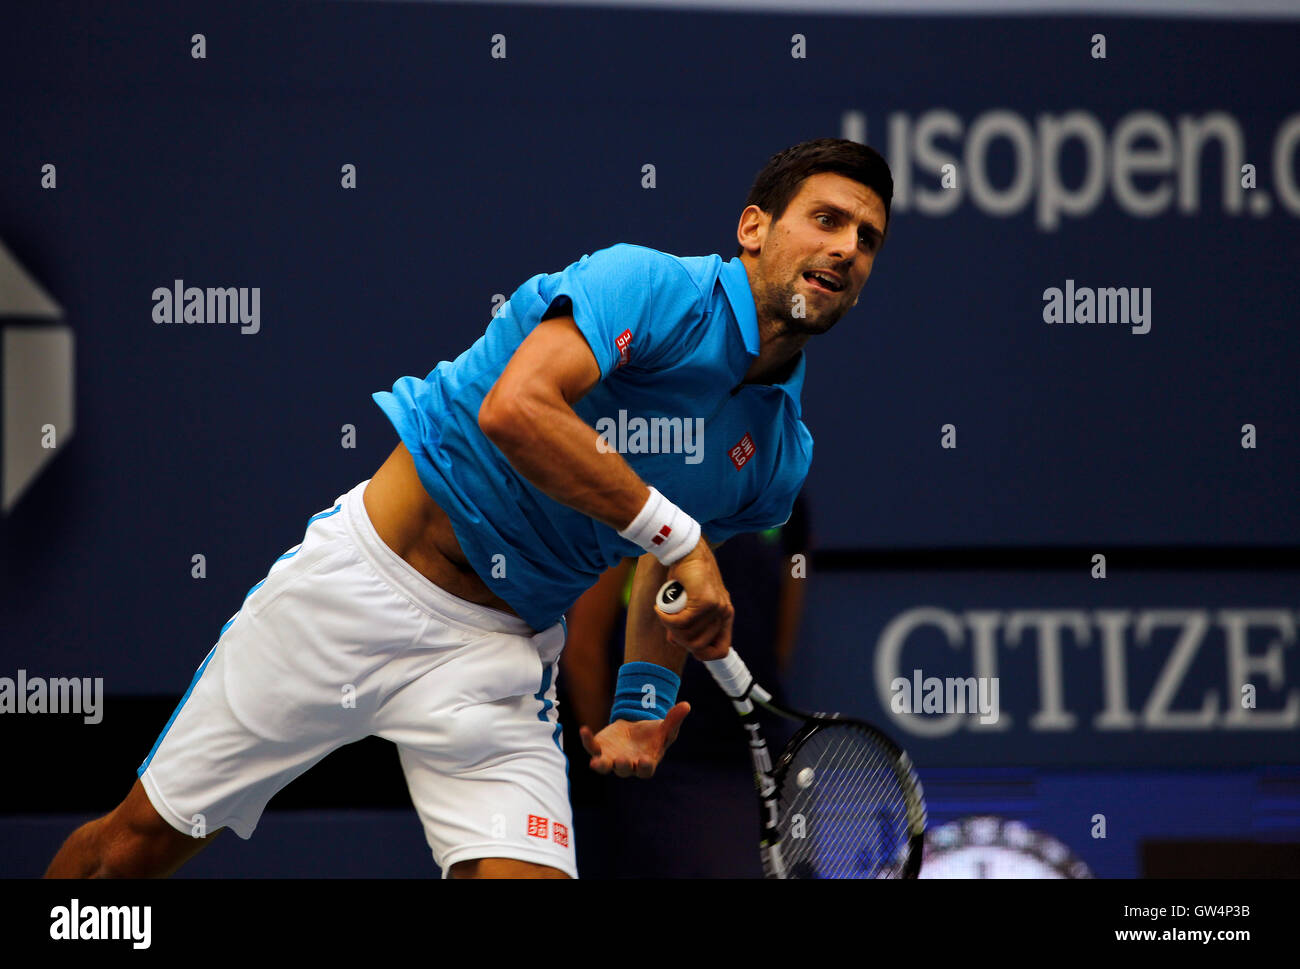 New York, United States. 11th Sep, 2016. Novak Djokovic serving during the United States Open Tennis Championships - Stock Image